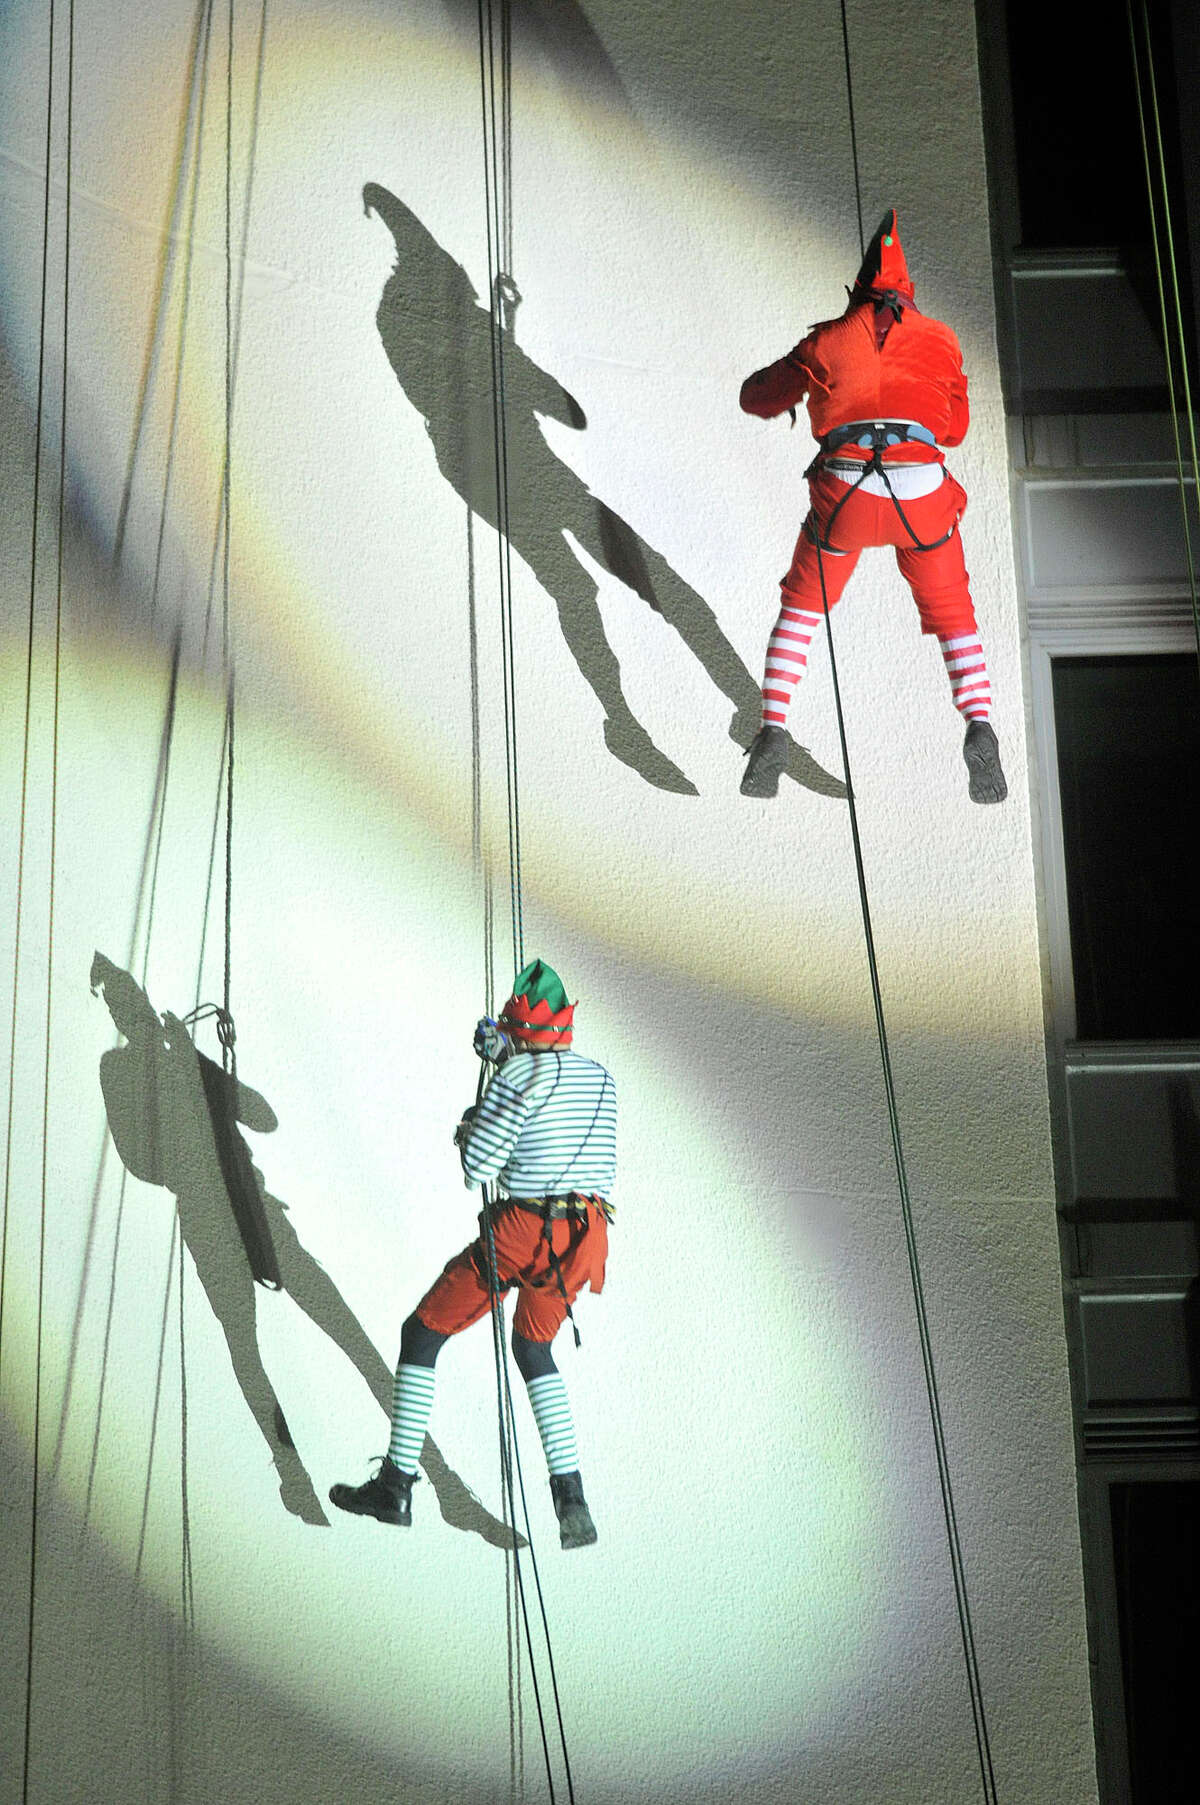 A scene from the 2014 Heights and Lights Rappel and Tree Lighting event in downtown Stamford. This year's event is Sunday Dec. 6 at 5 p.m.